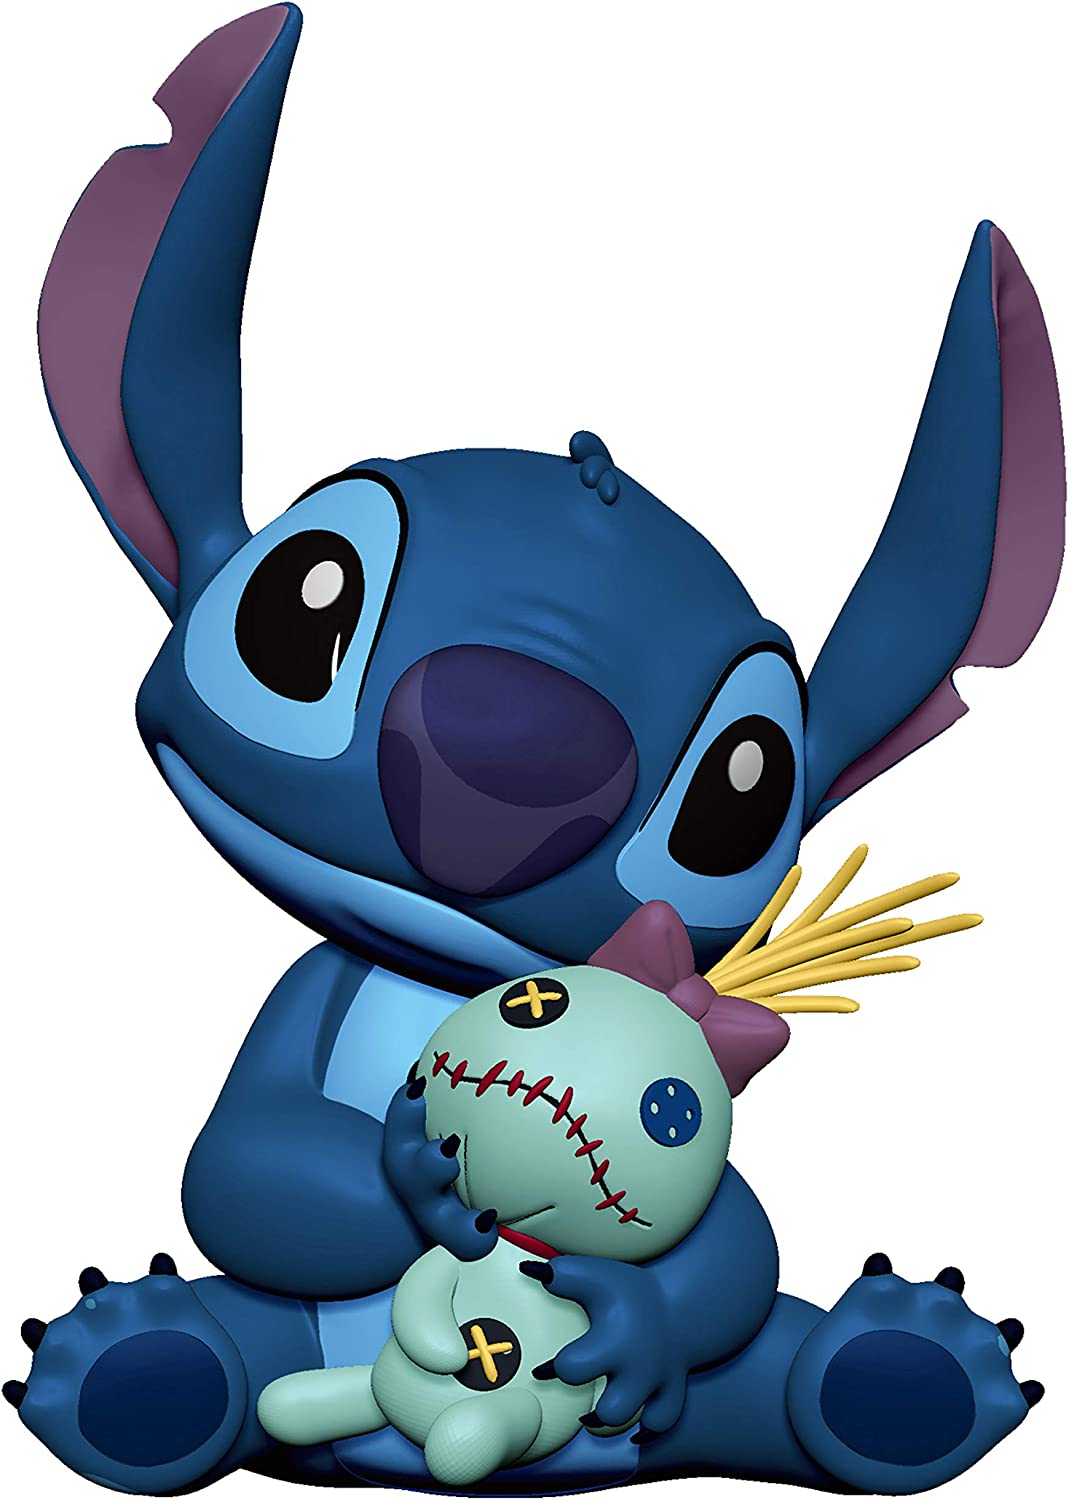 Stitch at the Movies  Figurine Christmas Ornament